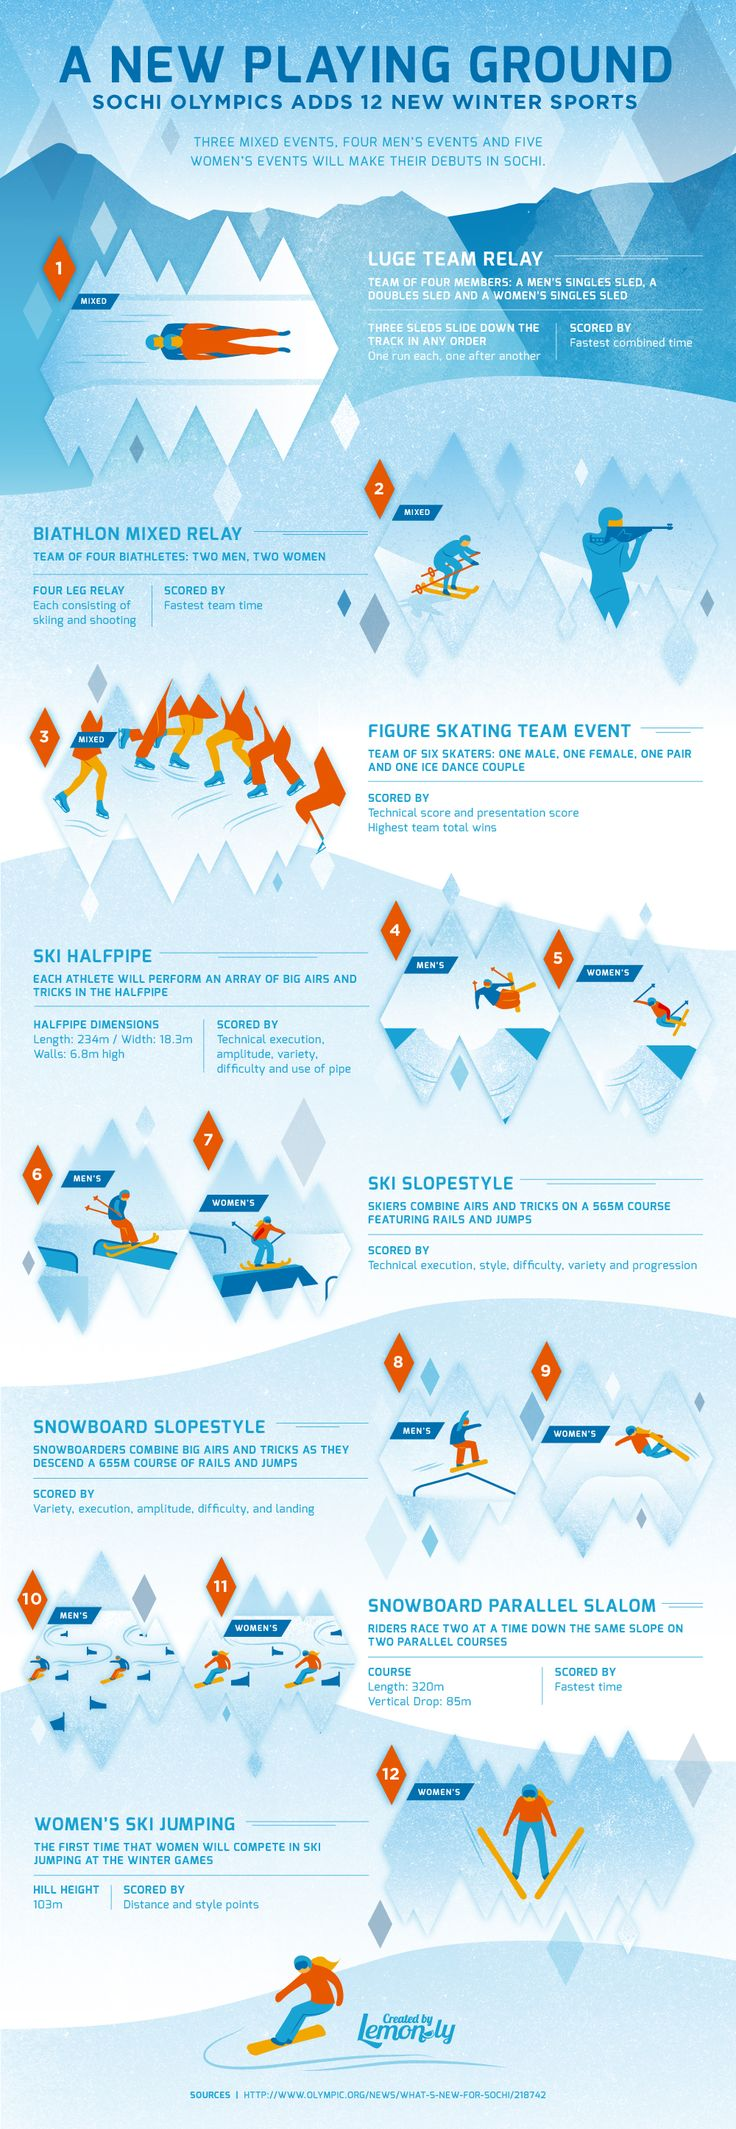 Is 2014 08 sports wagering guidelines that you cana t afford to overlook - Our New Olympic Sports 2014 Infographic Illustrates The 12 New Winter Olympic Events And How They Are Scored